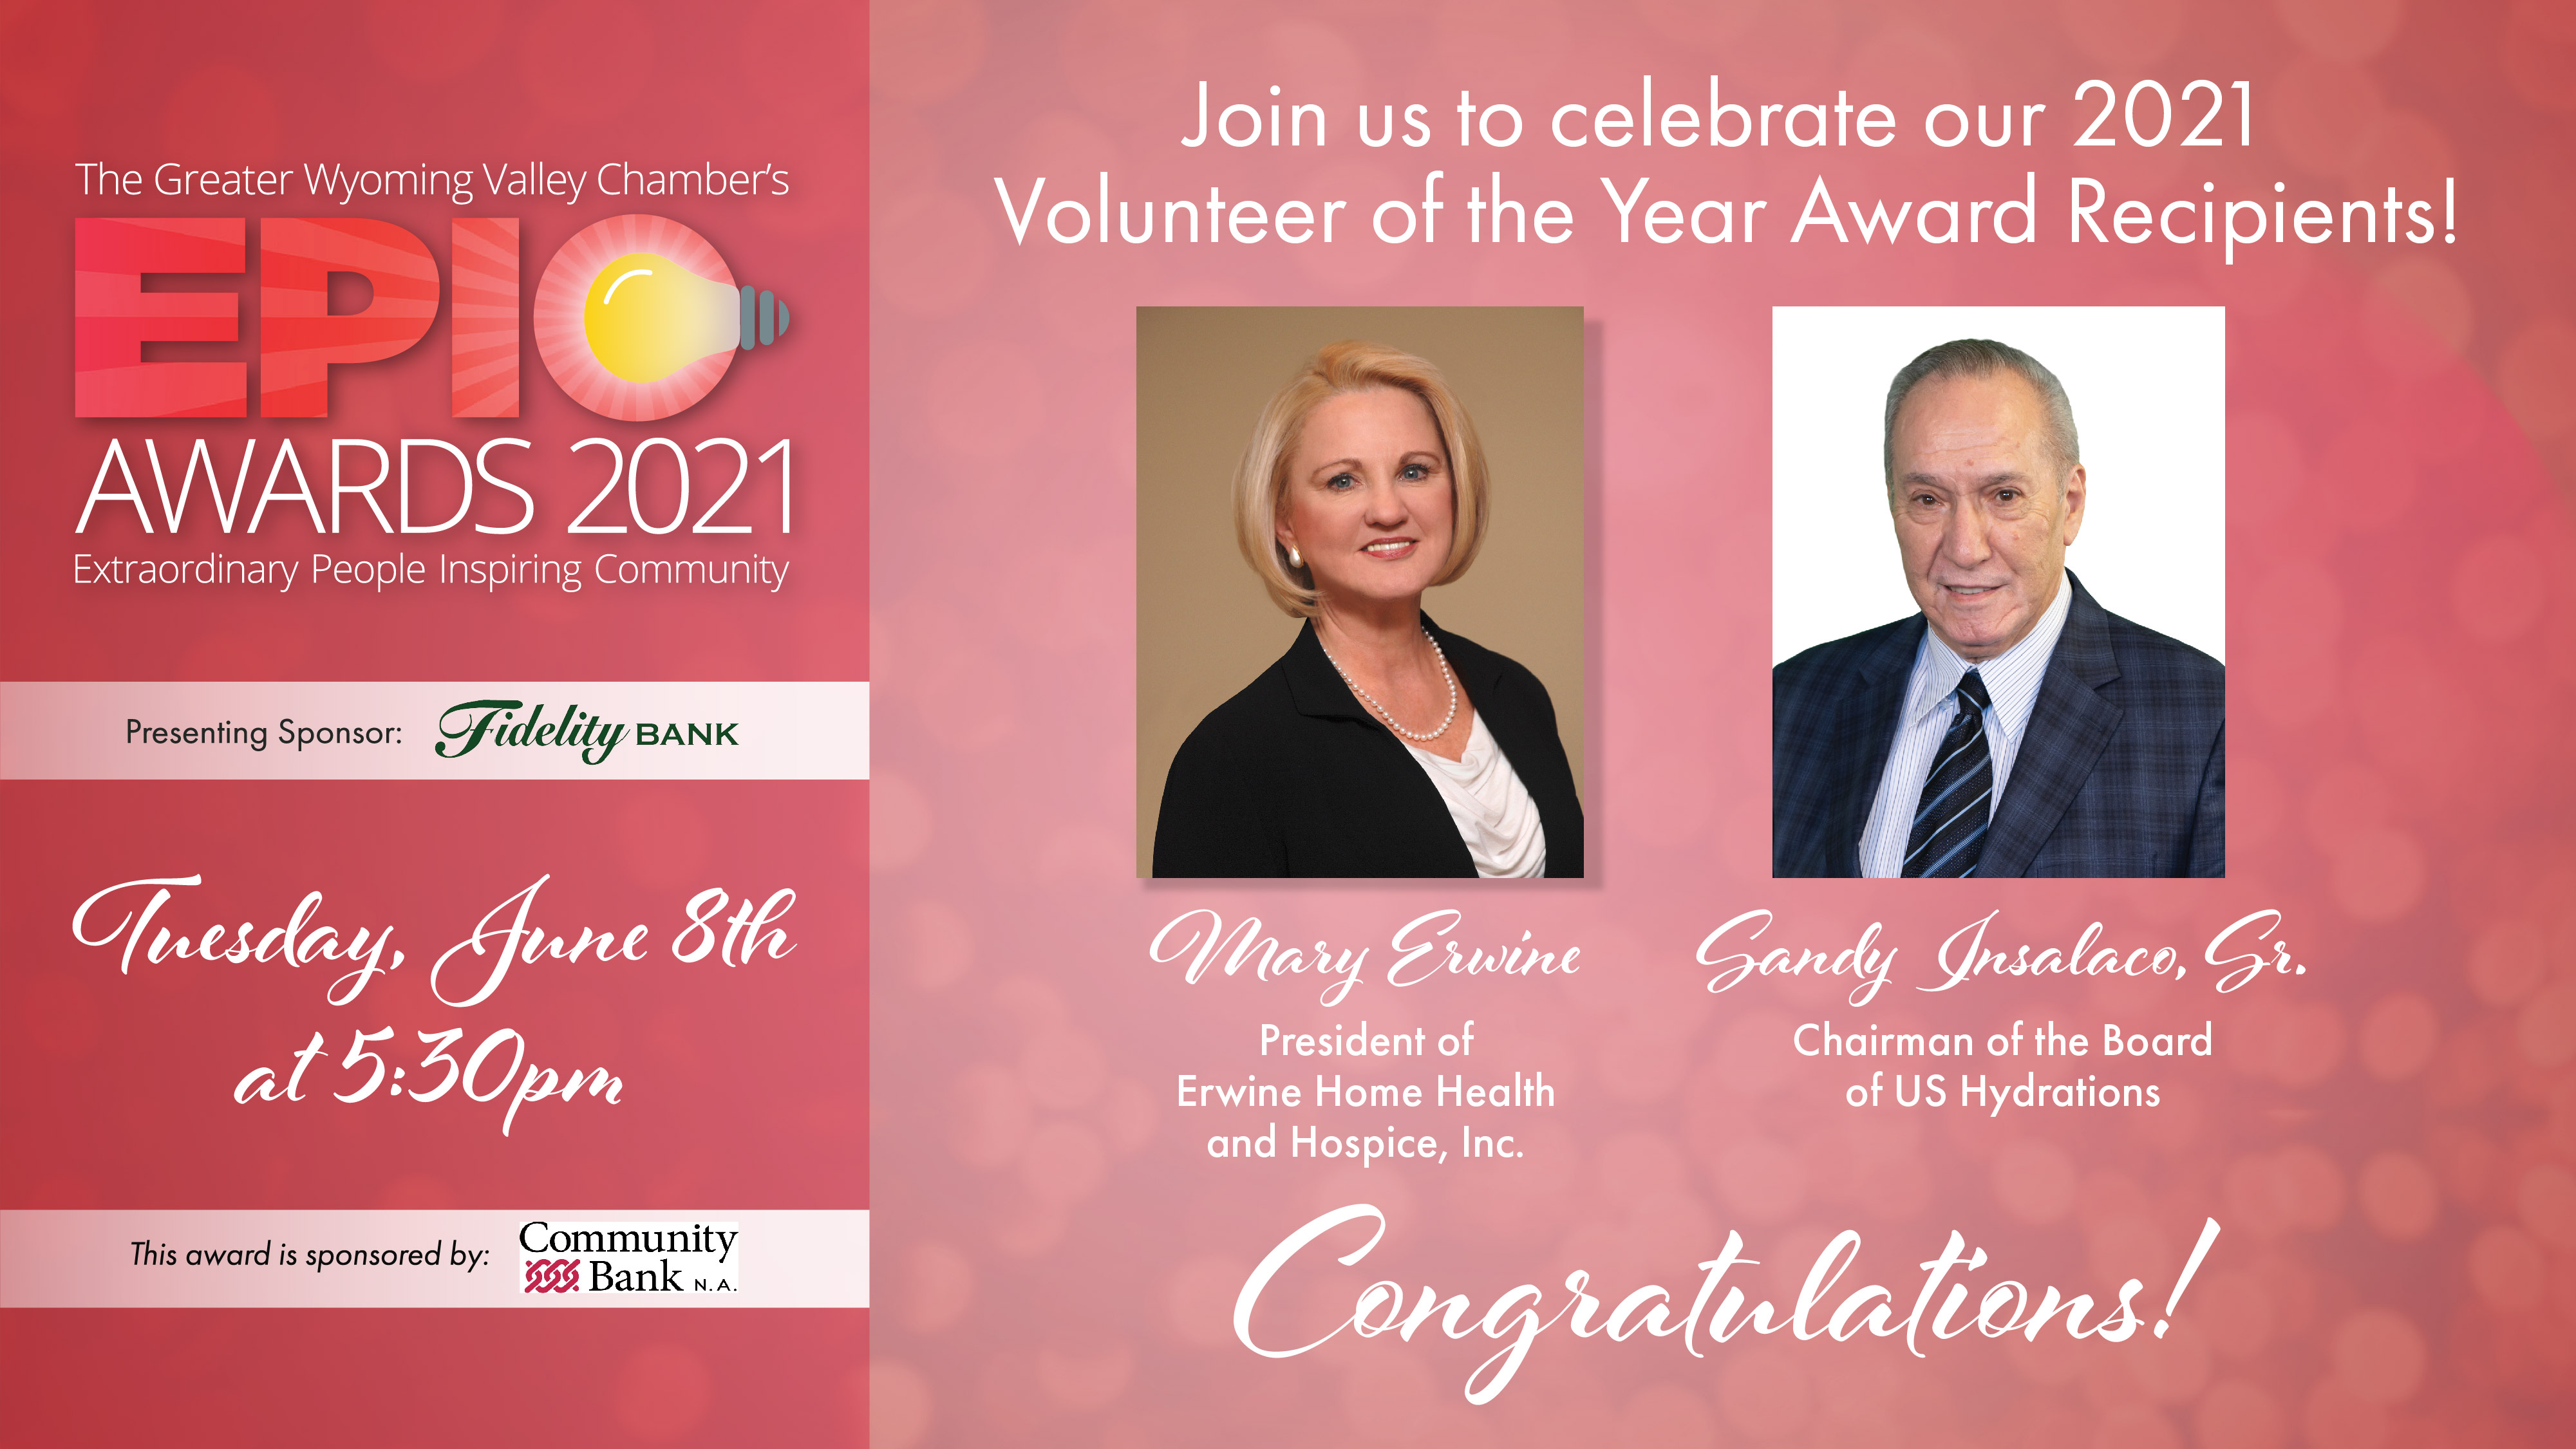 Image for Meet Our 2021 Volunteers of the Year: Mary Erwine & Sandy Insalaco!